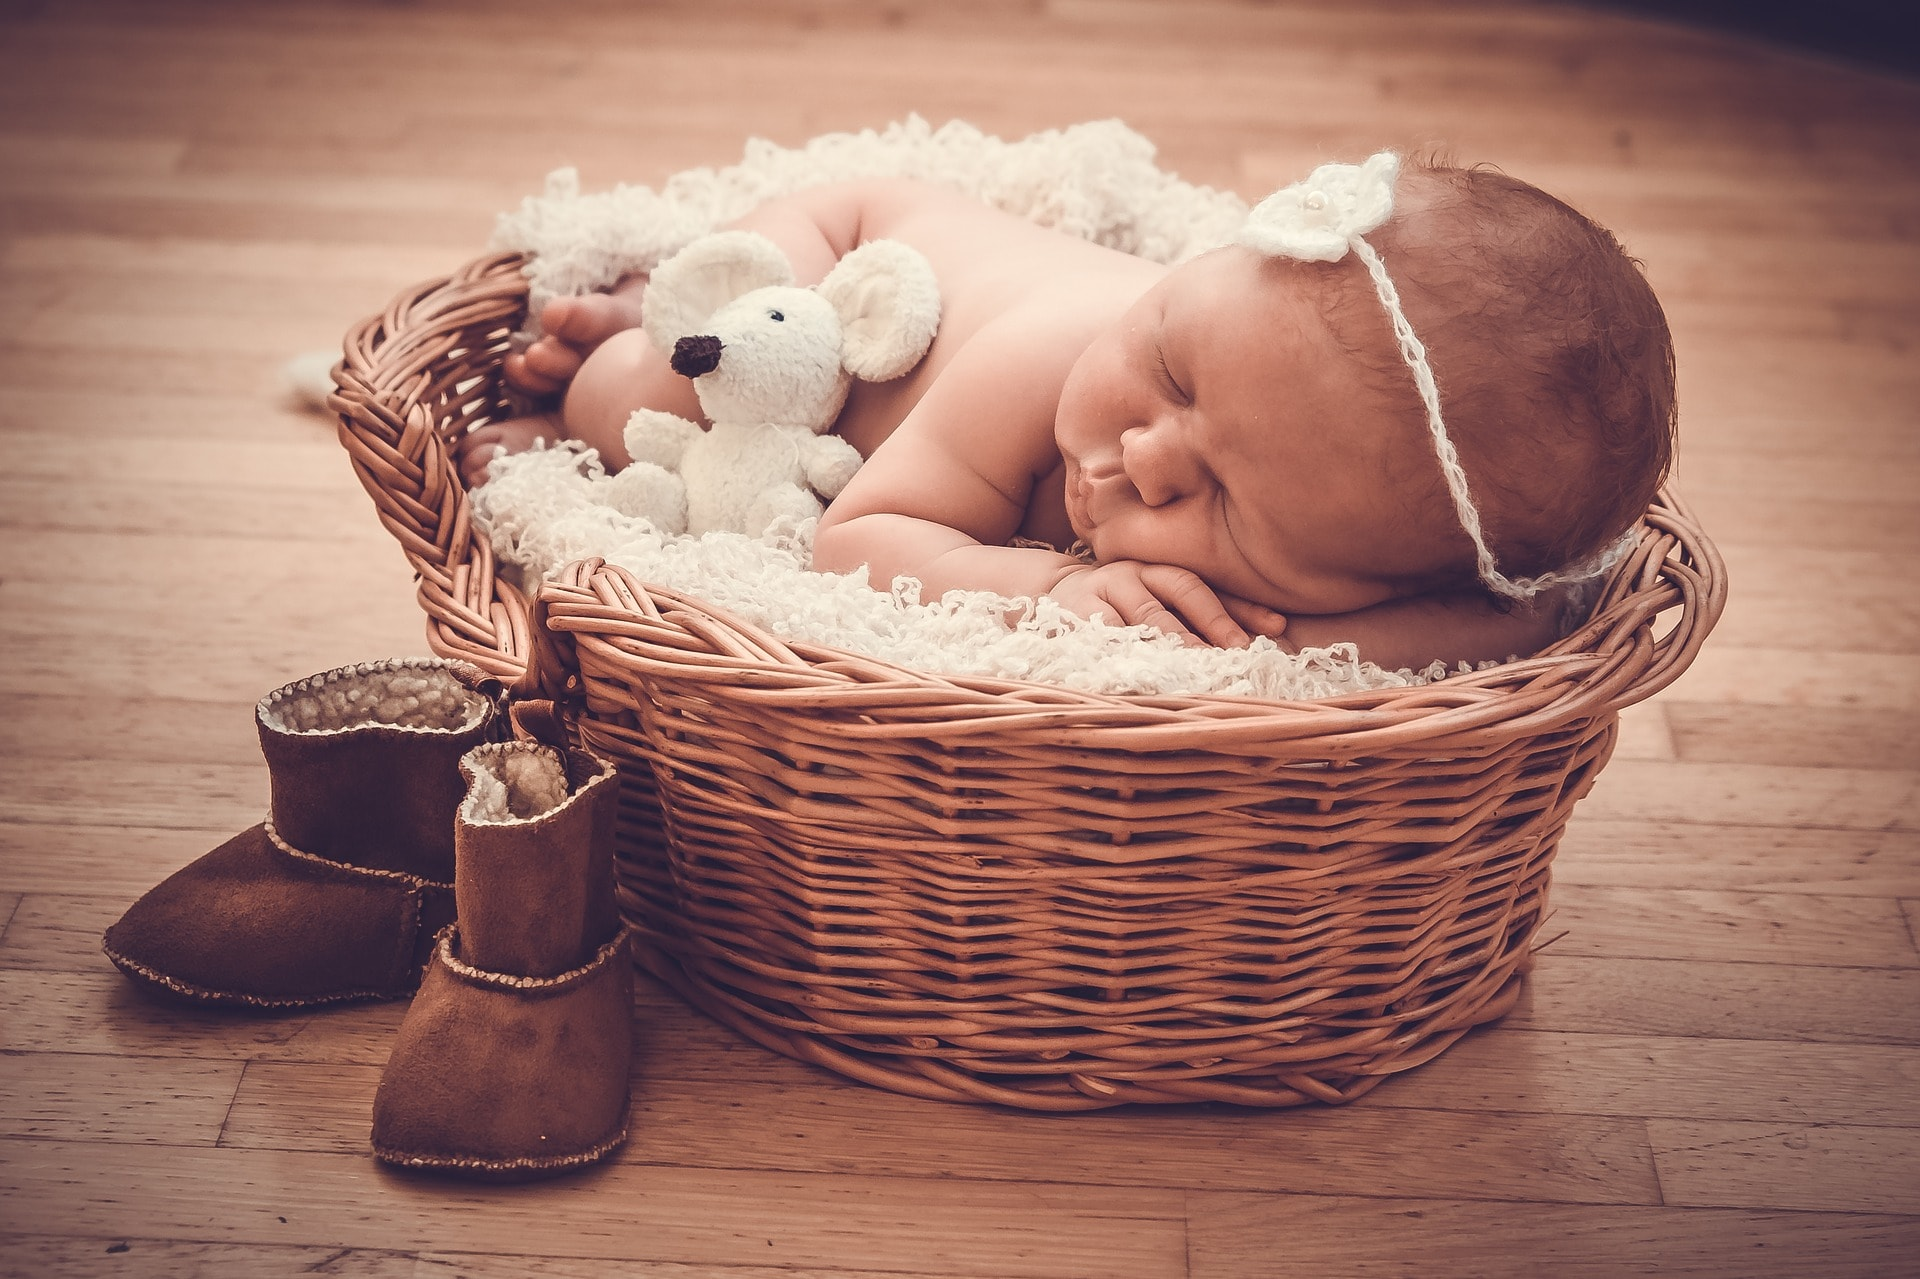 We're not sure which type of kitting this basket of baby comes under, but making gift baskets from your products is a sure fire way to get your customers buzzing. You're making their life easier by doing all the hard work of putting a package together for them.